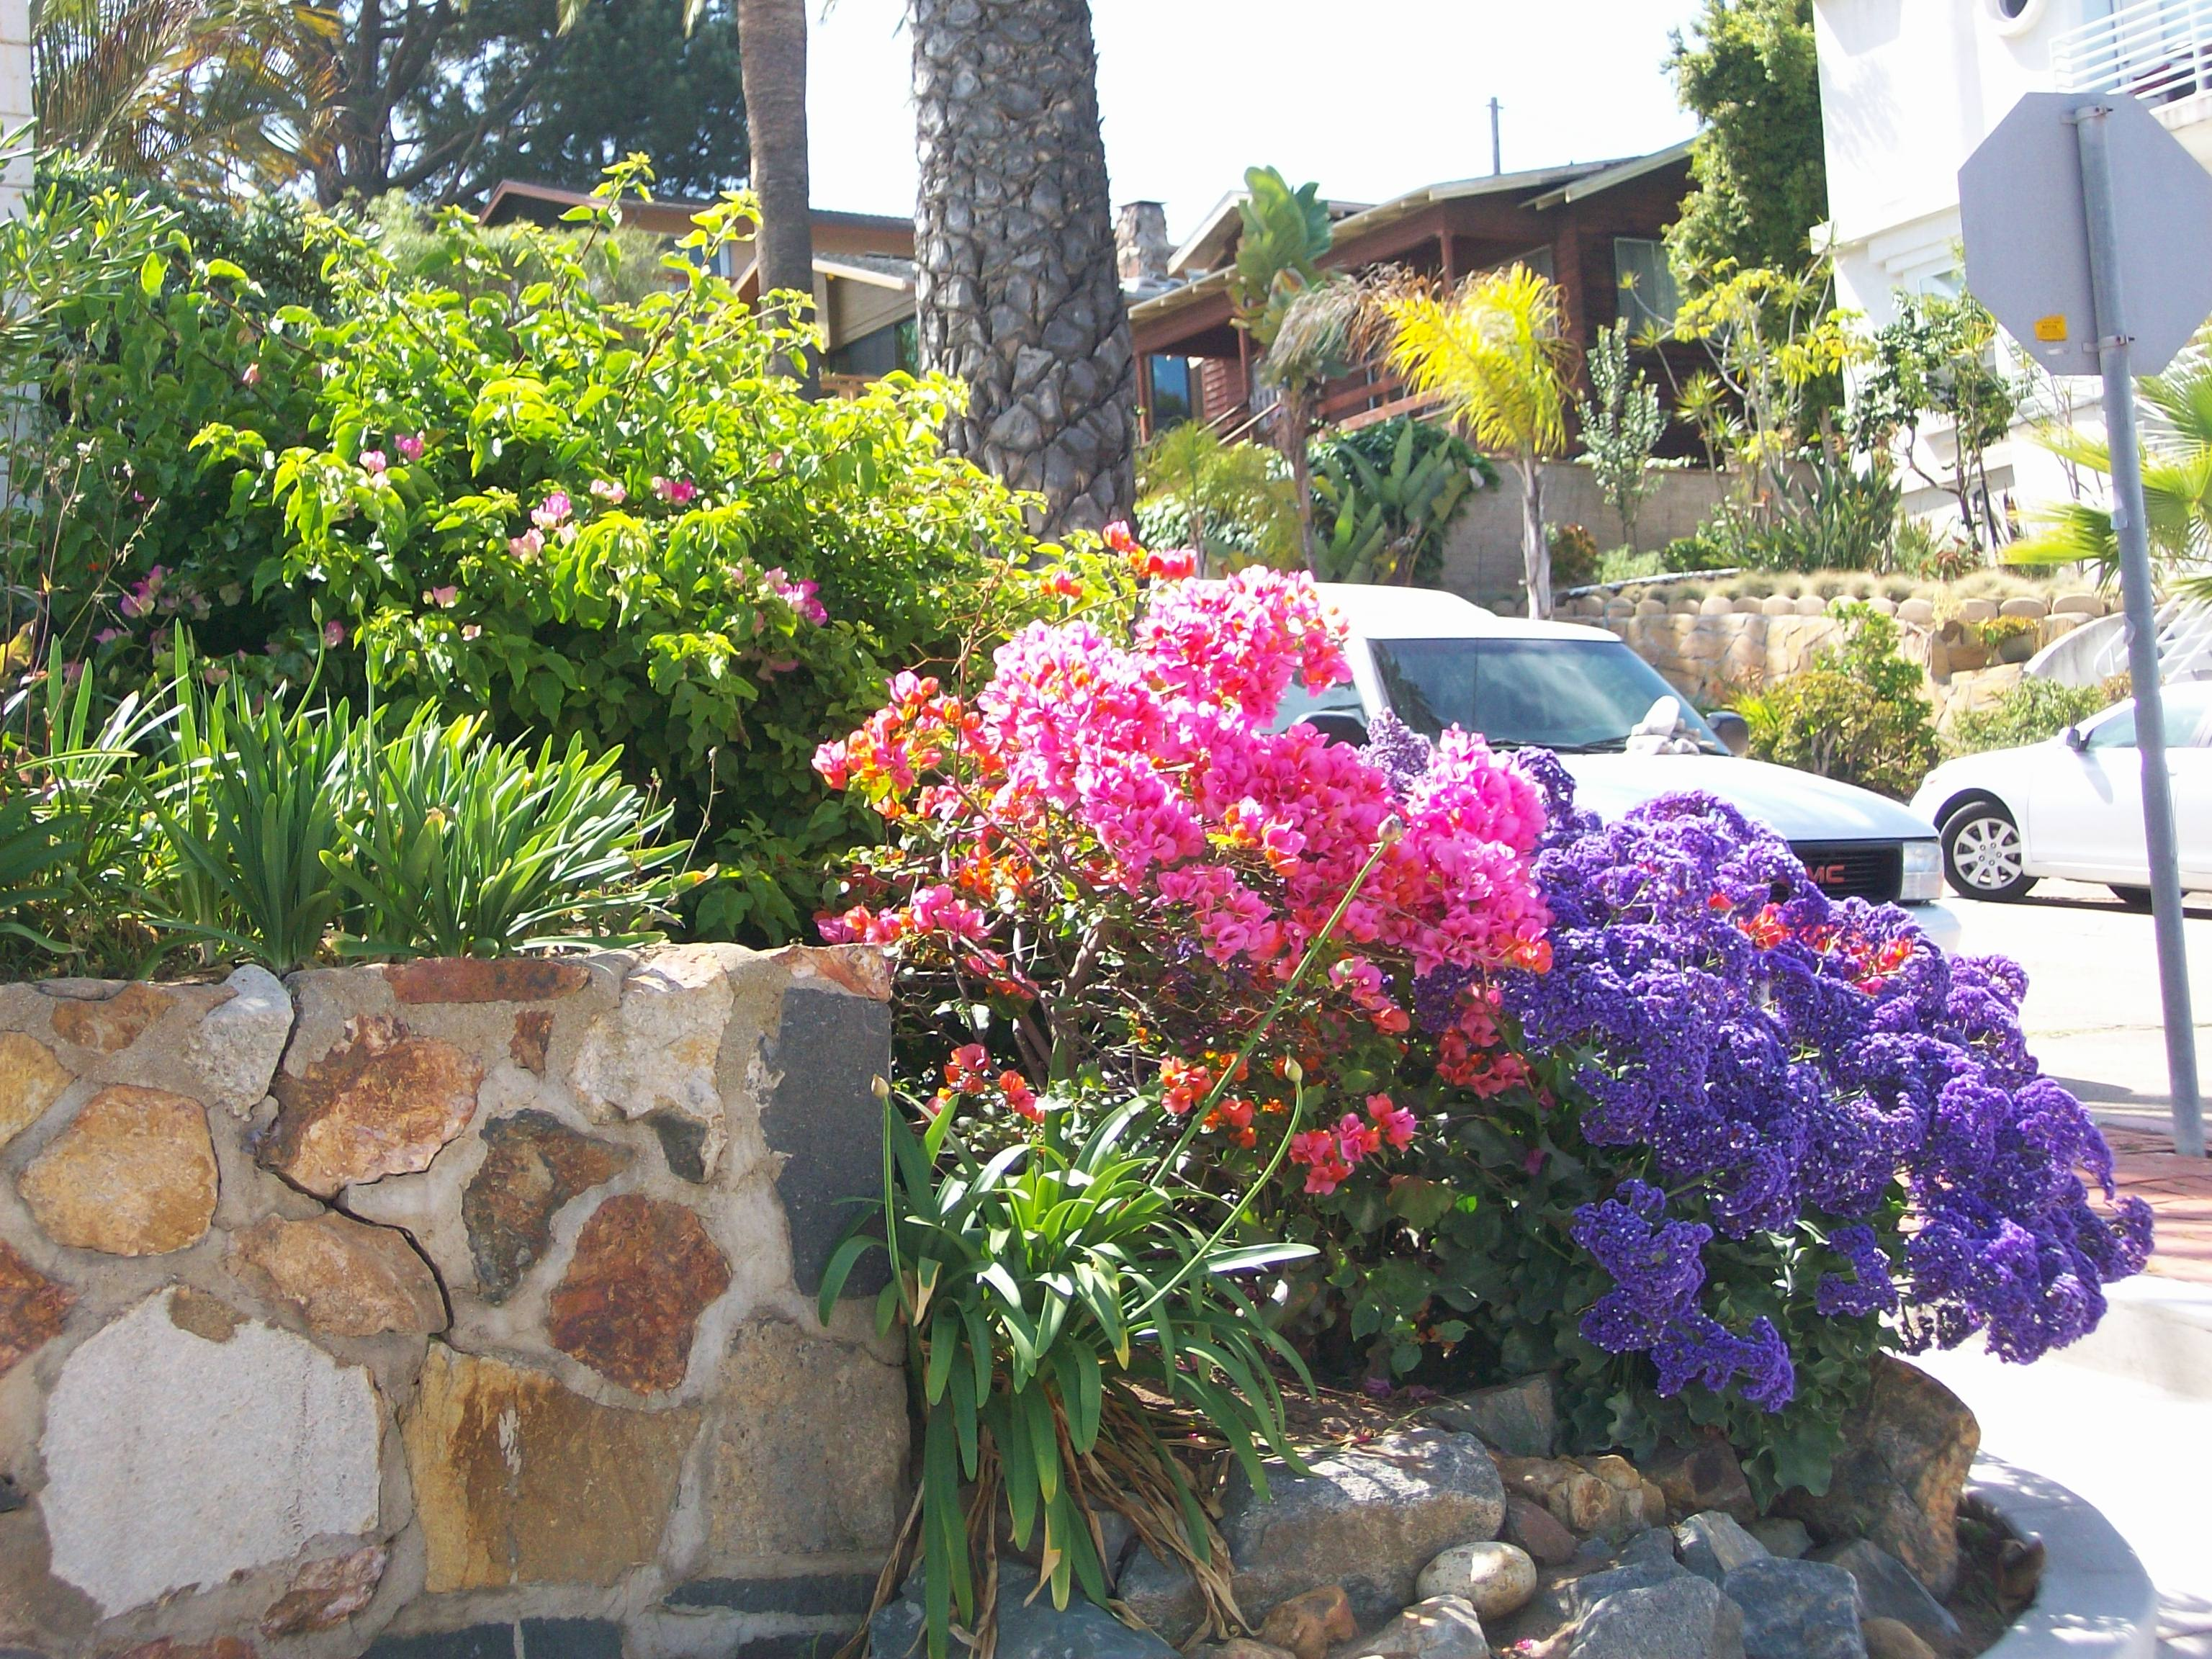 Colorful flowers in front yard of Pt. Loma home.